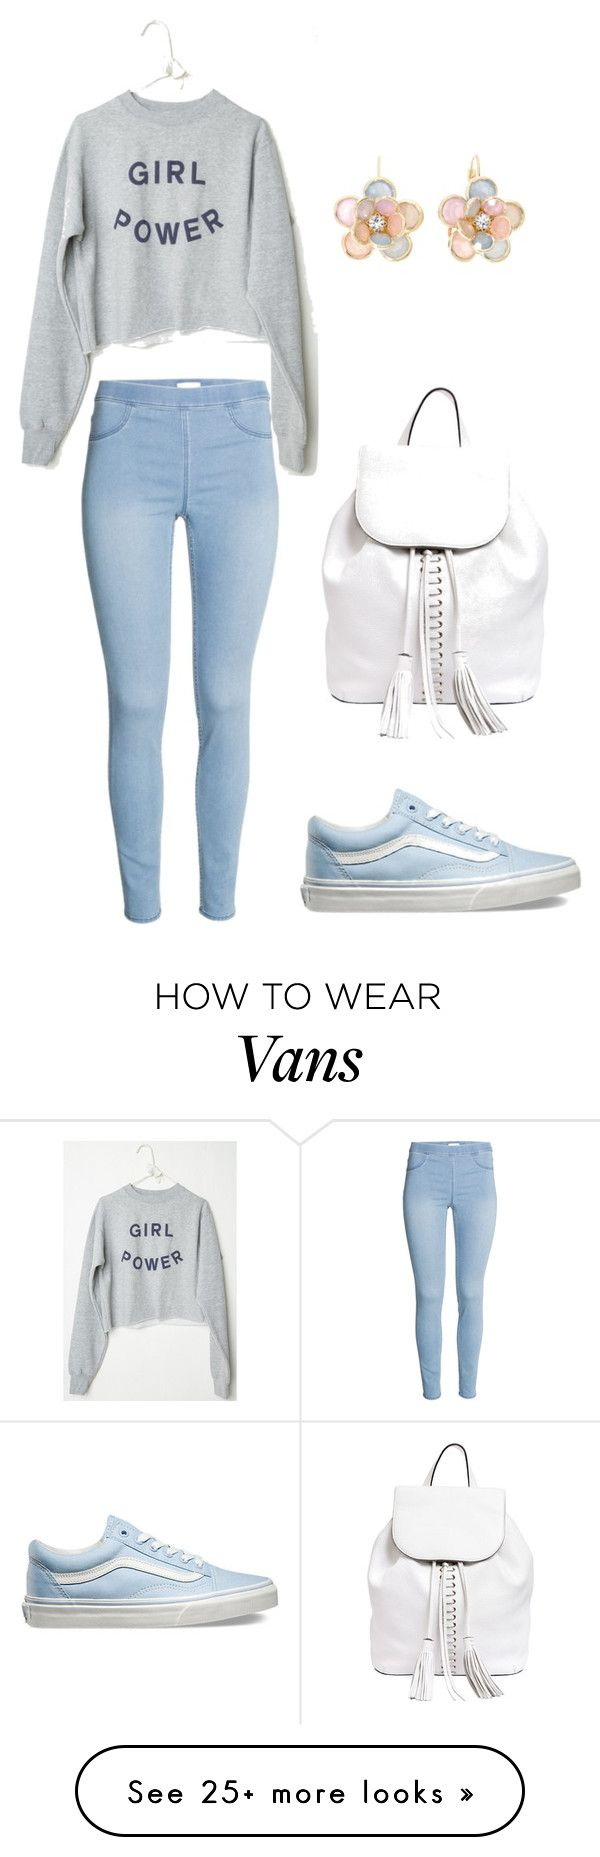 """Girl Power"" by sophia-marie-beauty on Polyvore featuring Vans, Rebecca Minkoff, Mixit, women's clothing, women, female, woman, misses and juniors"